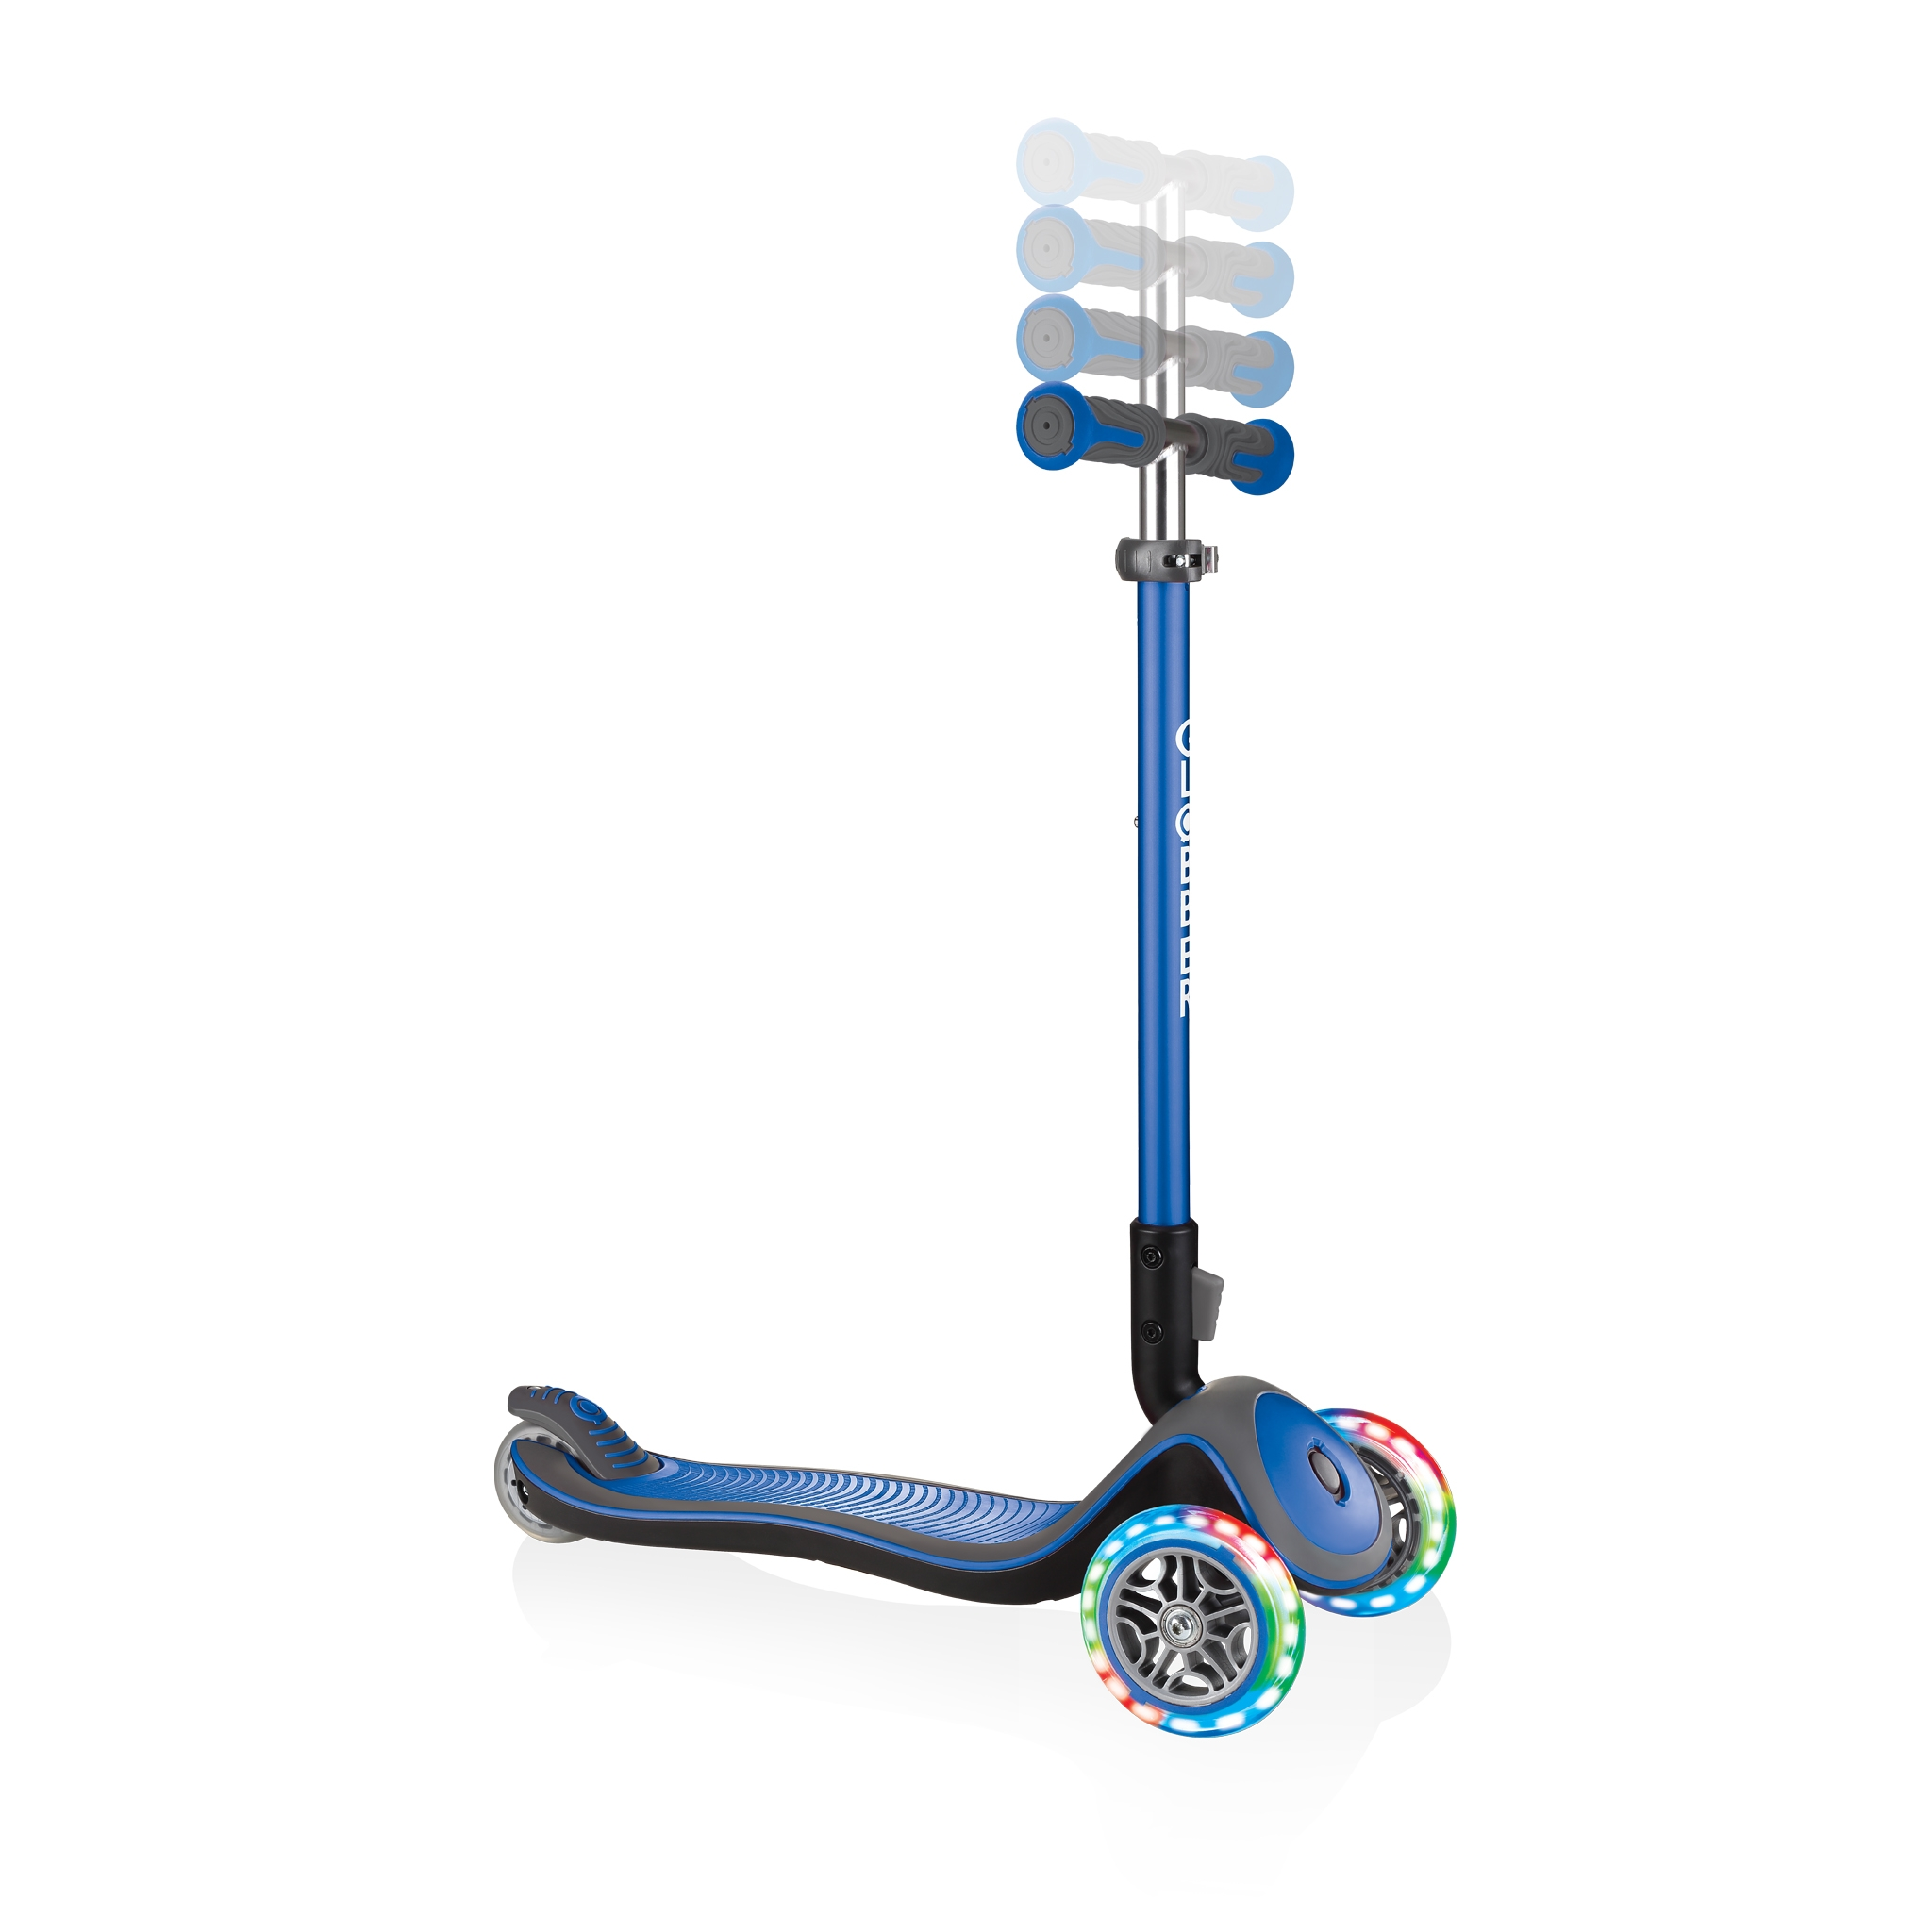 Globber-ELITE-DELUXE-LIGHTS-3-wheel-adjustable-scooter-for-kids-with-light-up-scooter-wheels-navy-blue 1